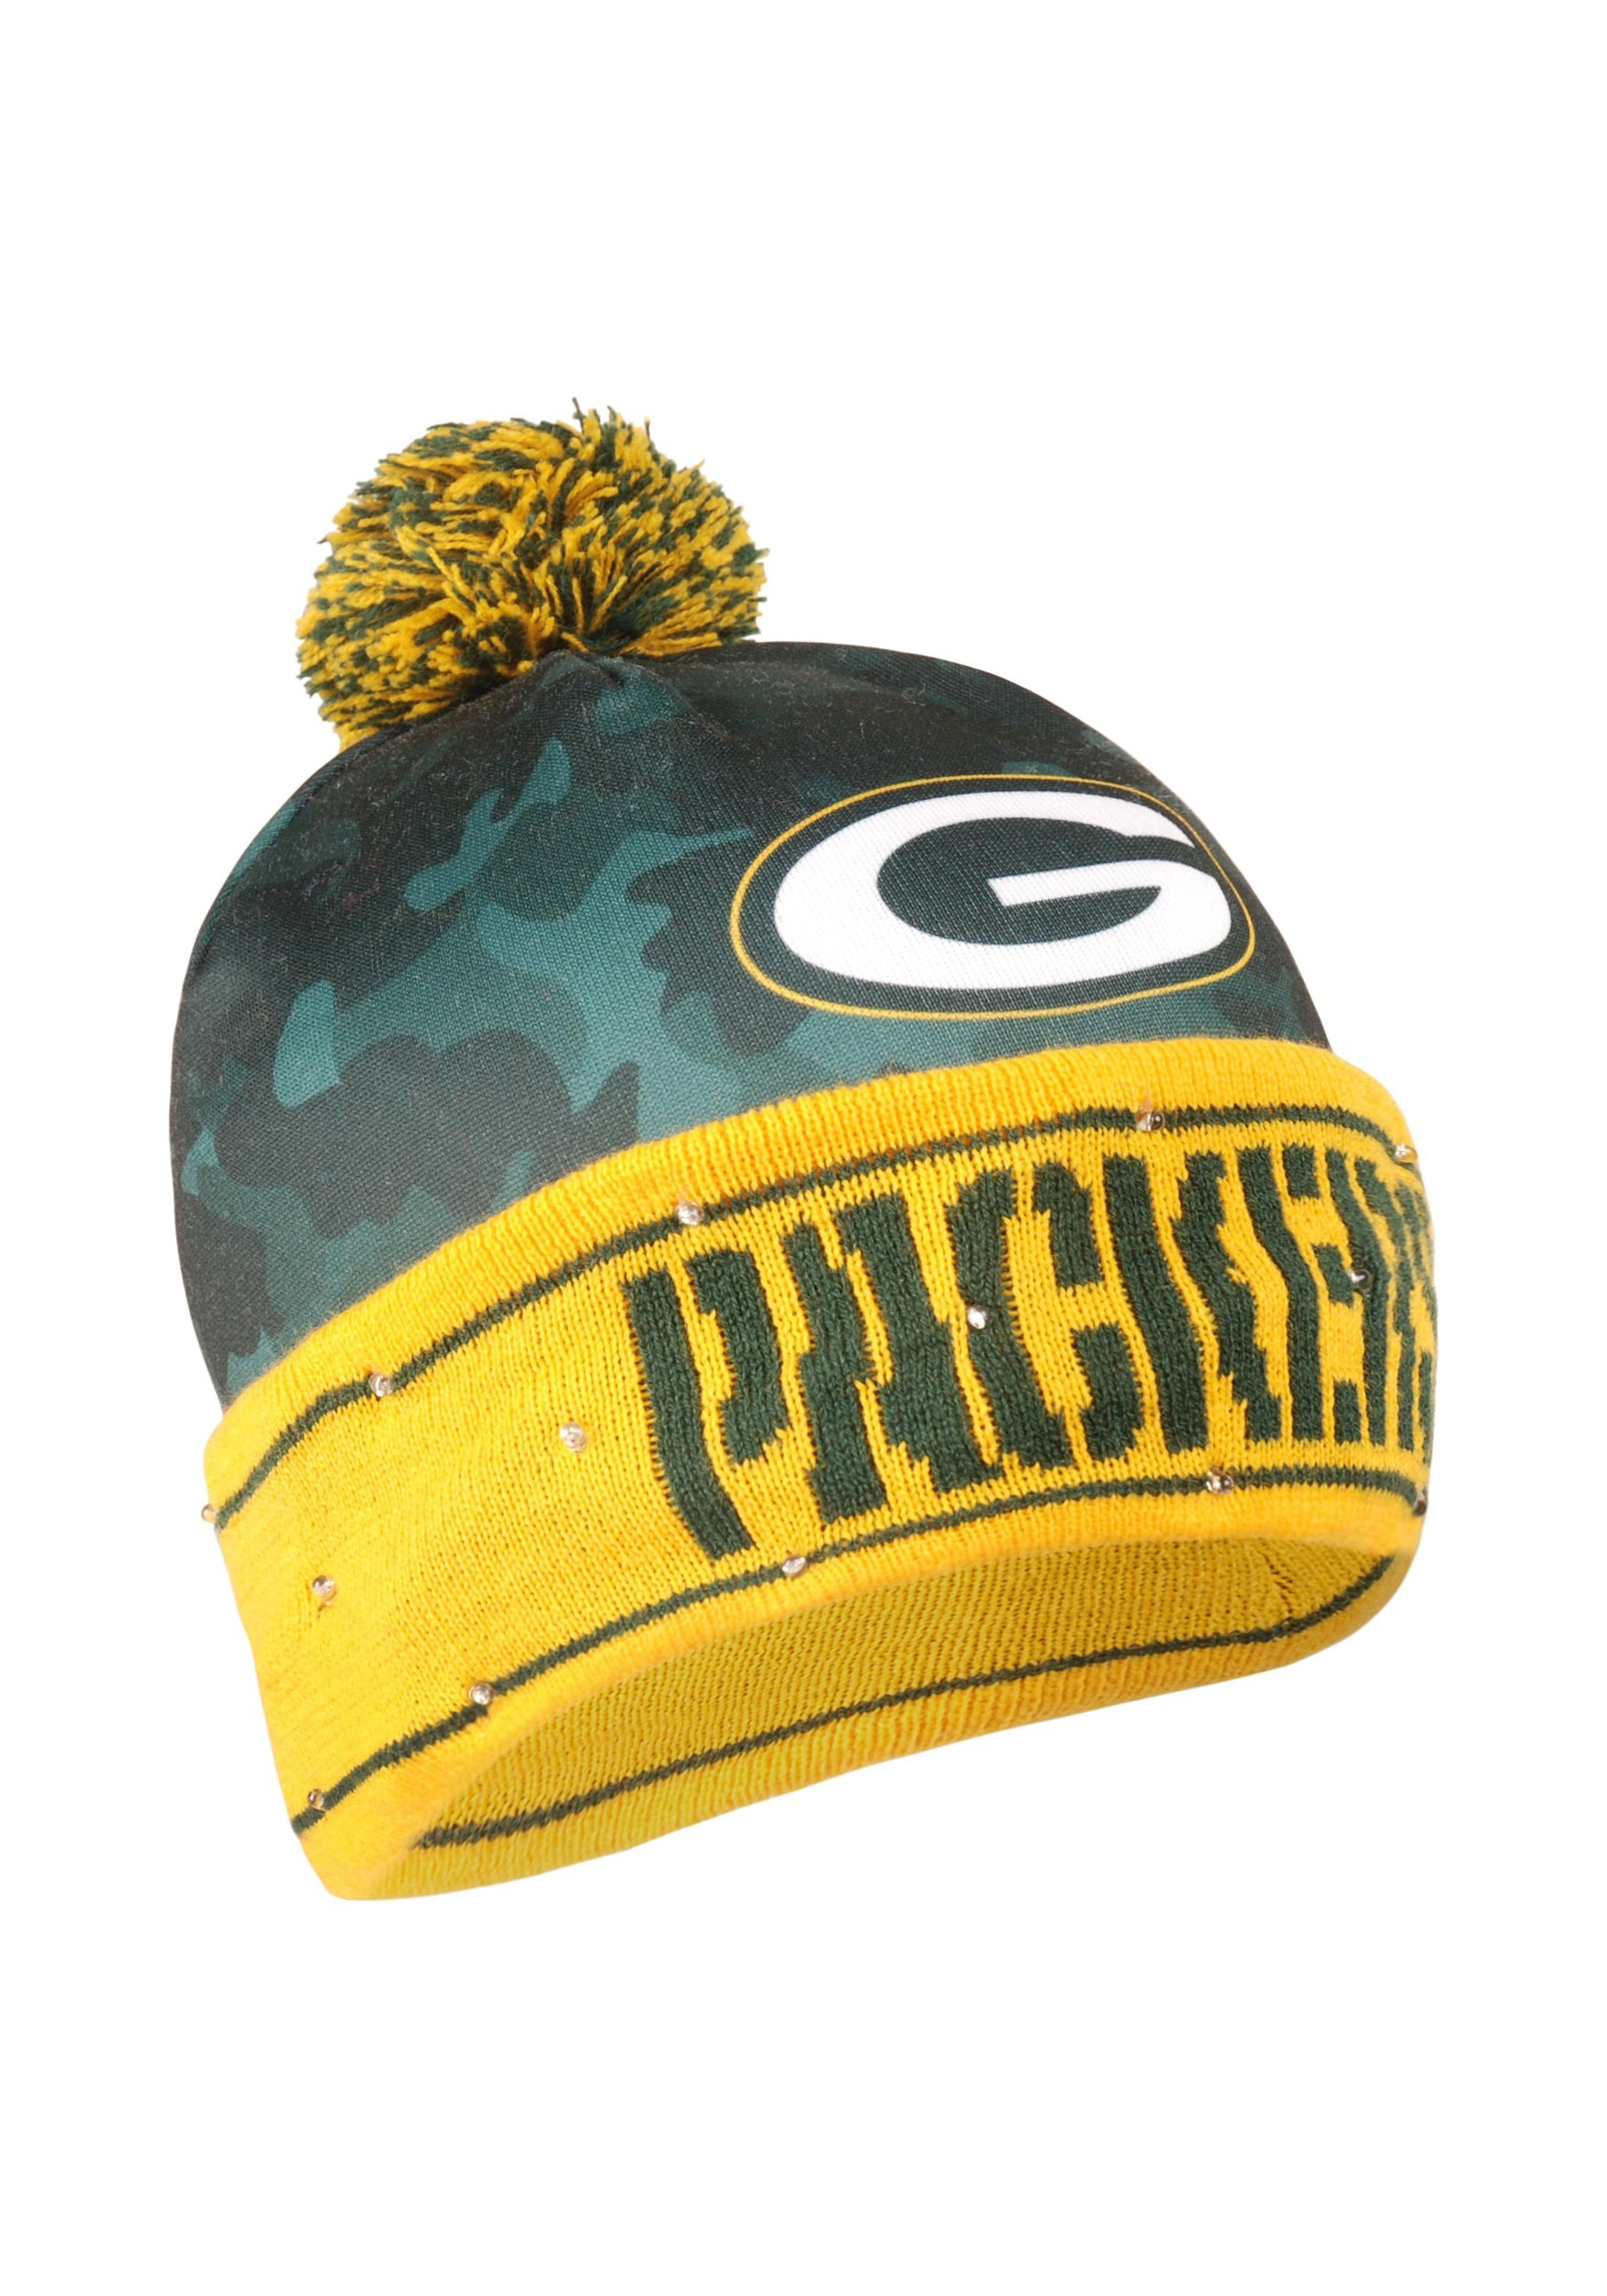 0e2eb3535ed Nfl green bay packers camouflage light up printed stocking hat jpg  1750x2500 Camouflage packer stocking hat